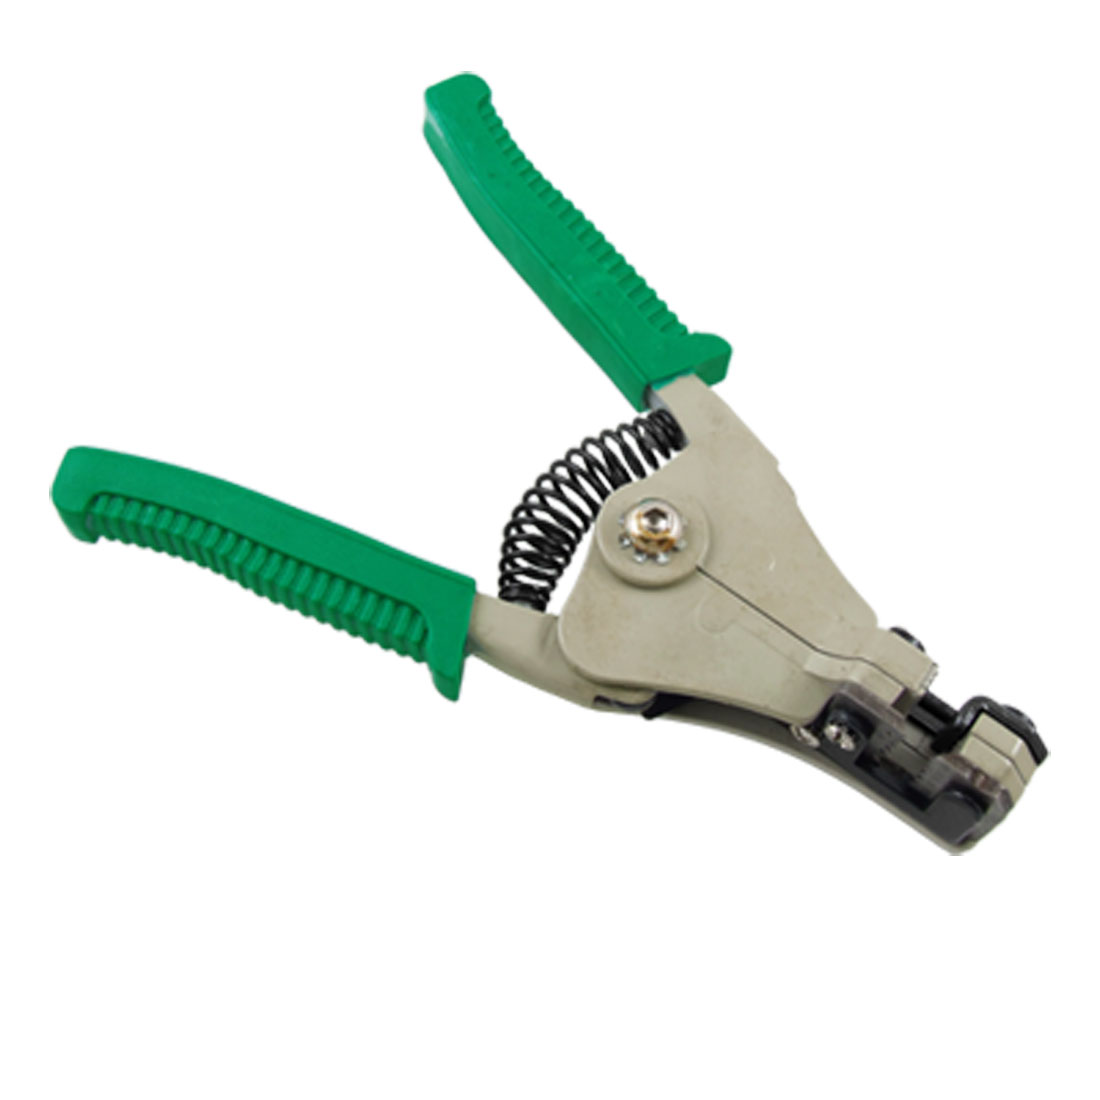 Squeeze Handle Cutter Automatic Wire Stripper w 6 Wire Size